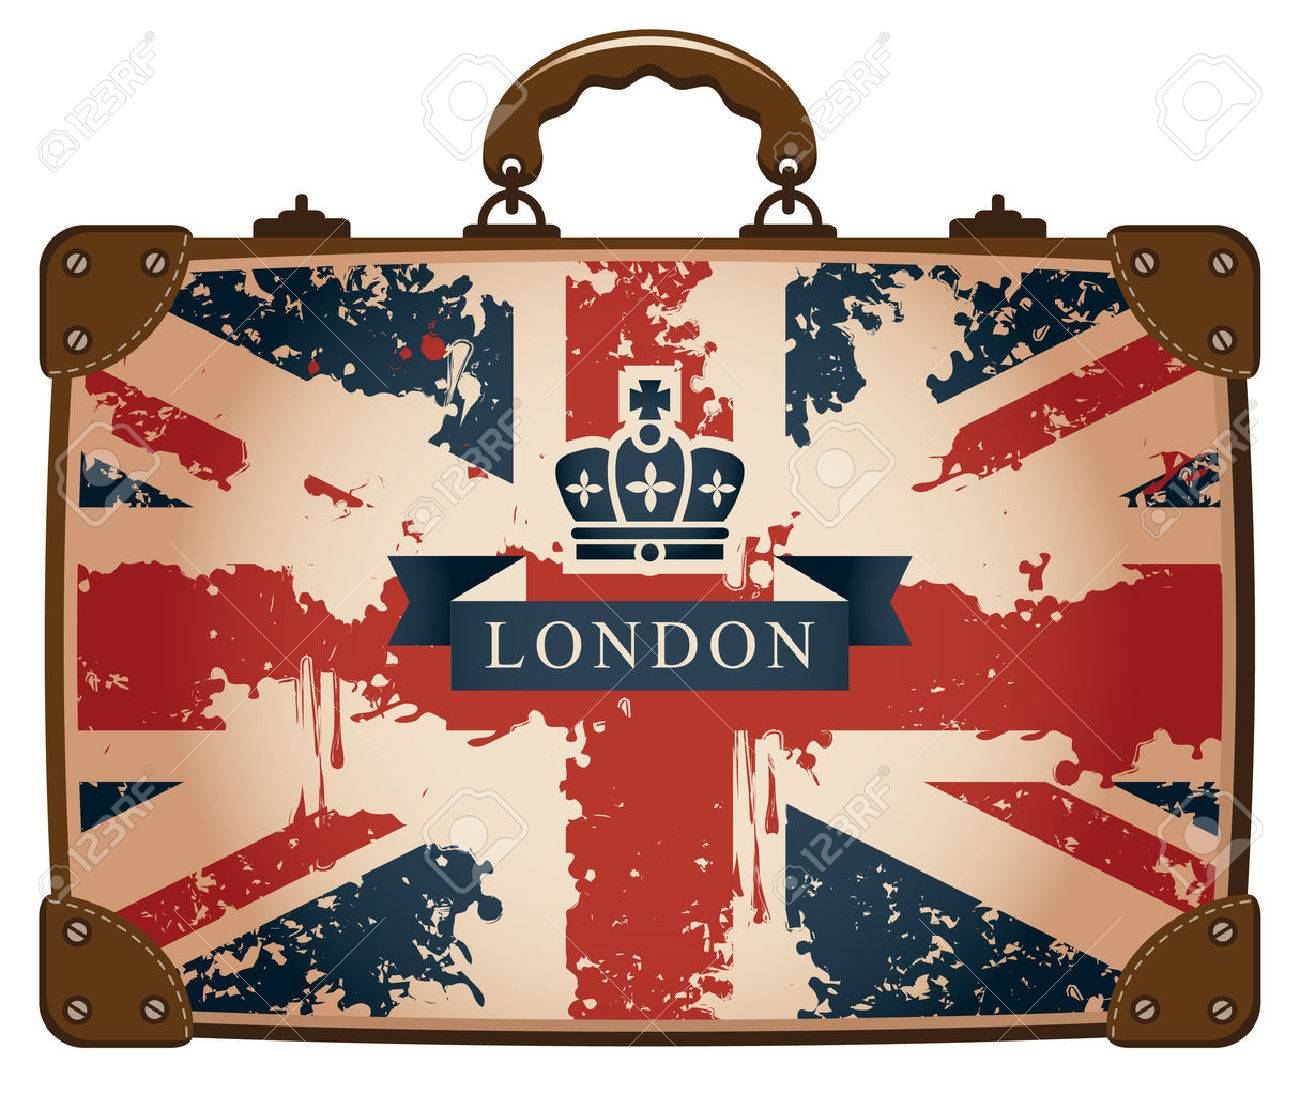 Travel bag with a British flag and crown - 28909953